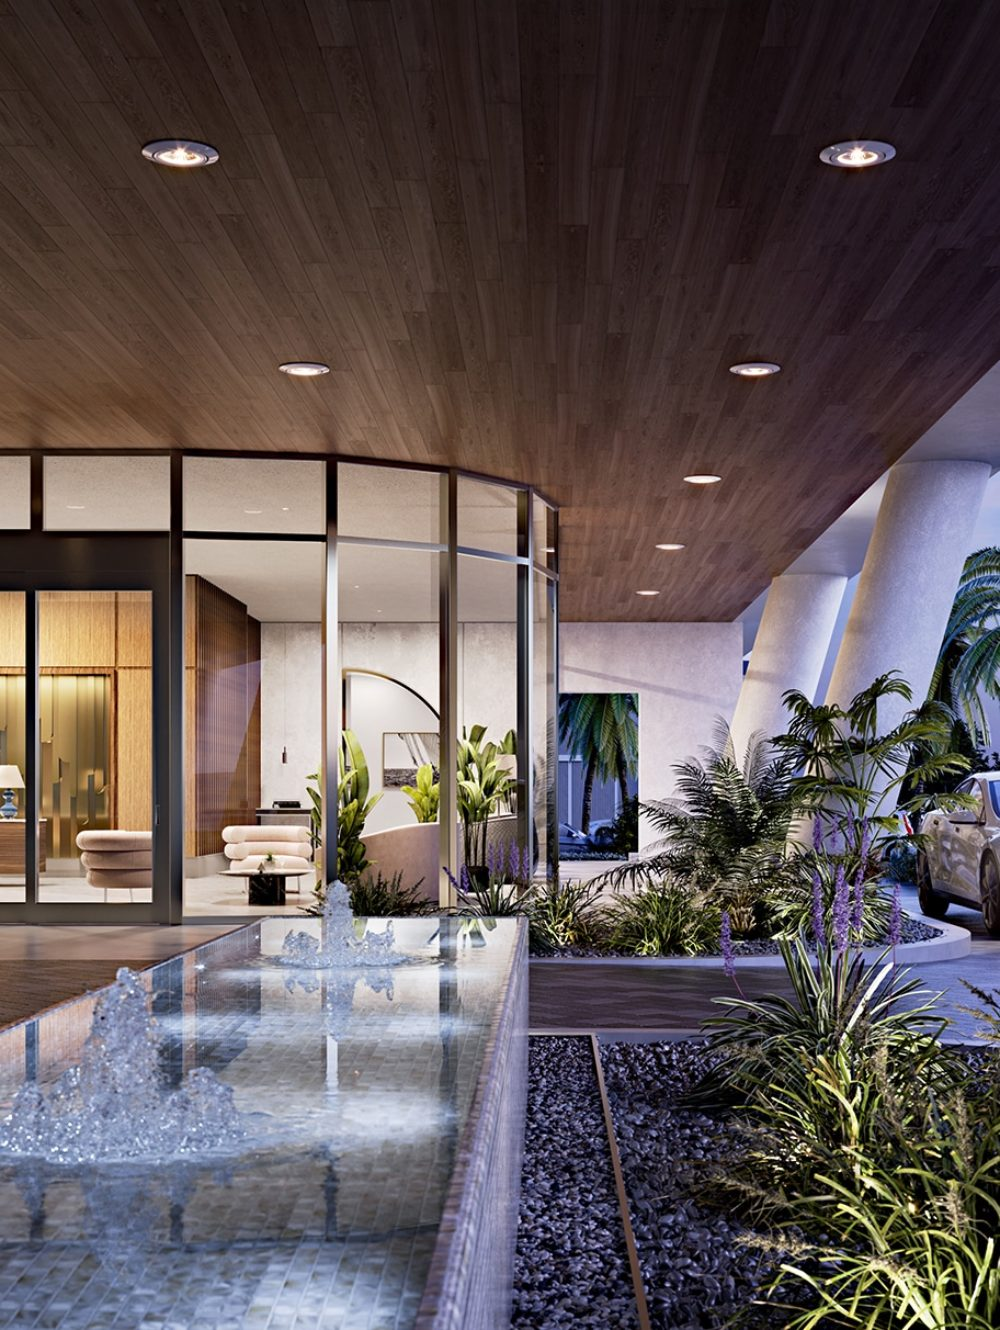 Front entrance and driveway at Mr. C Residences in Miami. Water fountain and ferns near floor-to-ceiling windows of lobby.